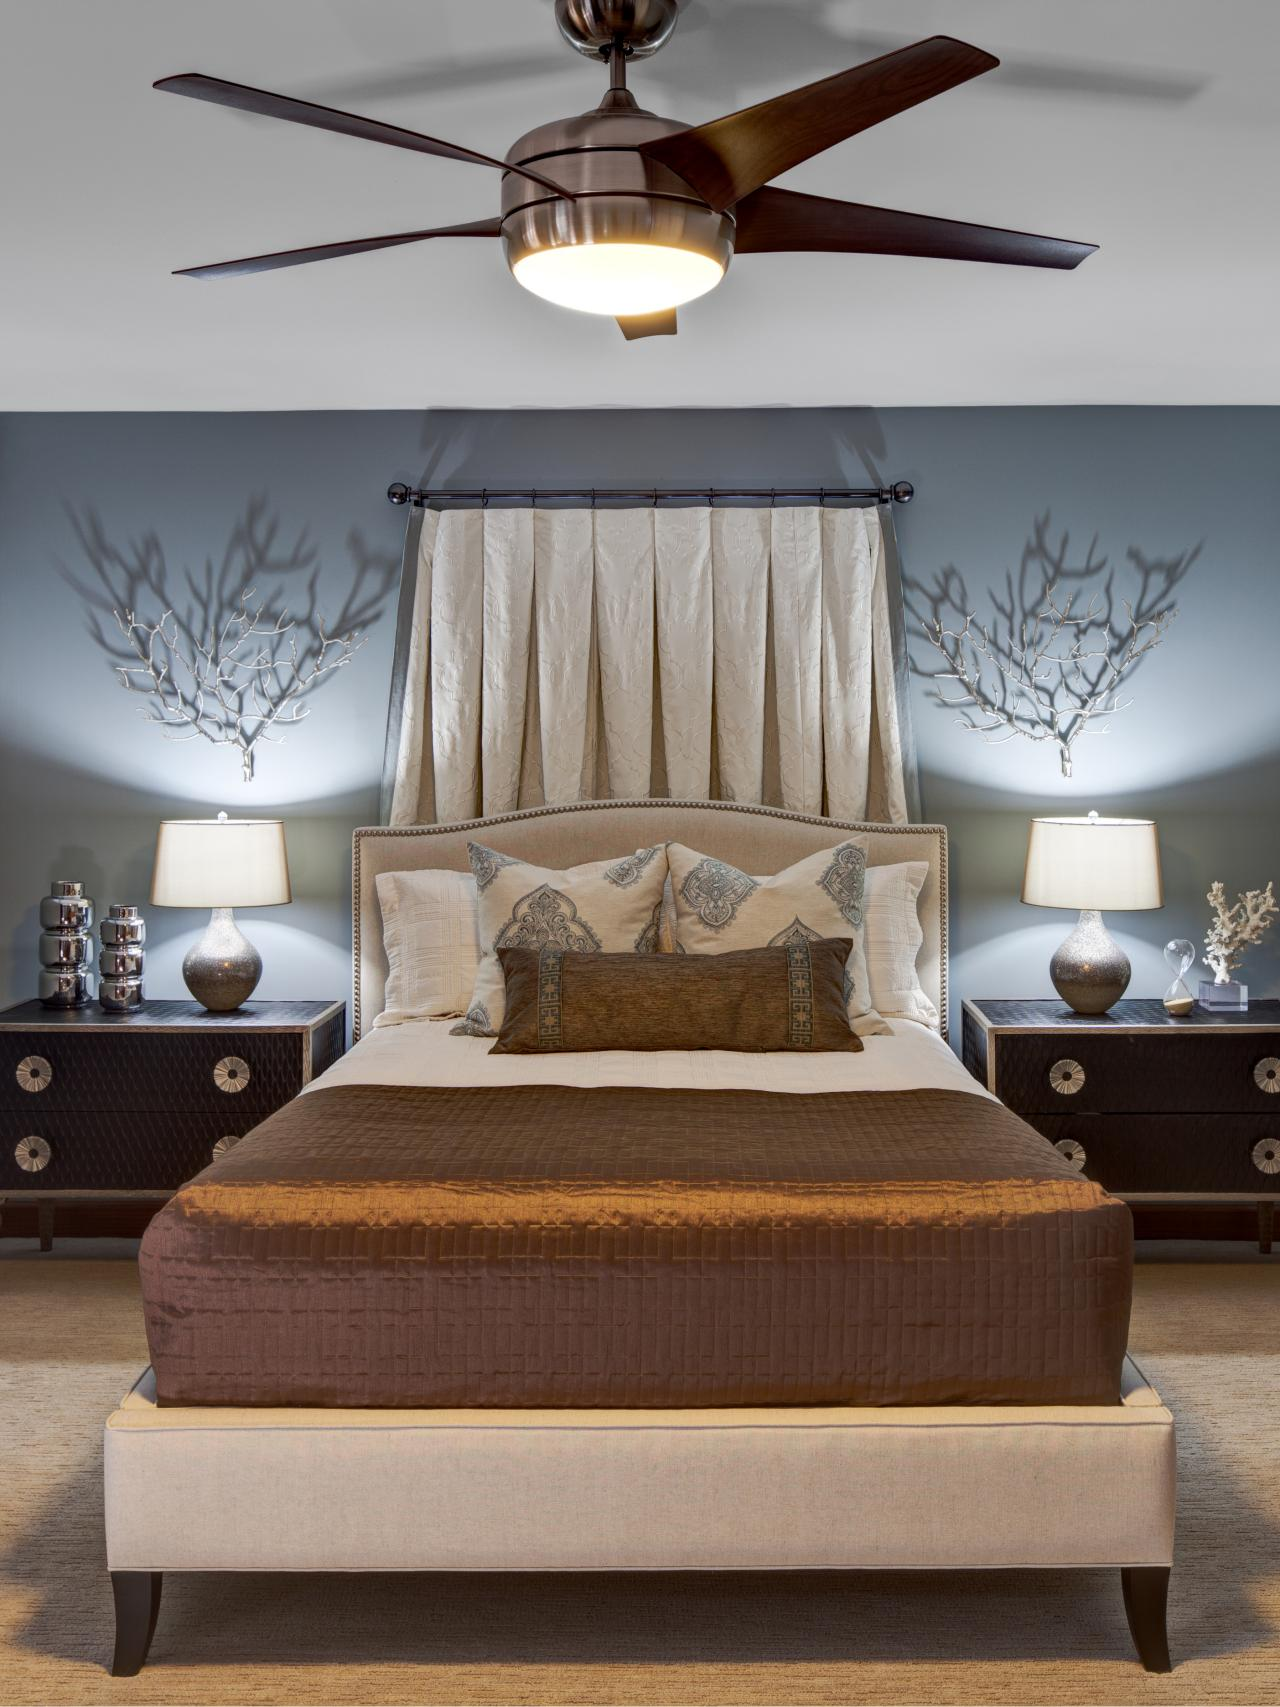 Blue bedroom with ceiling fan this designer bedroom Modern bedroom blue